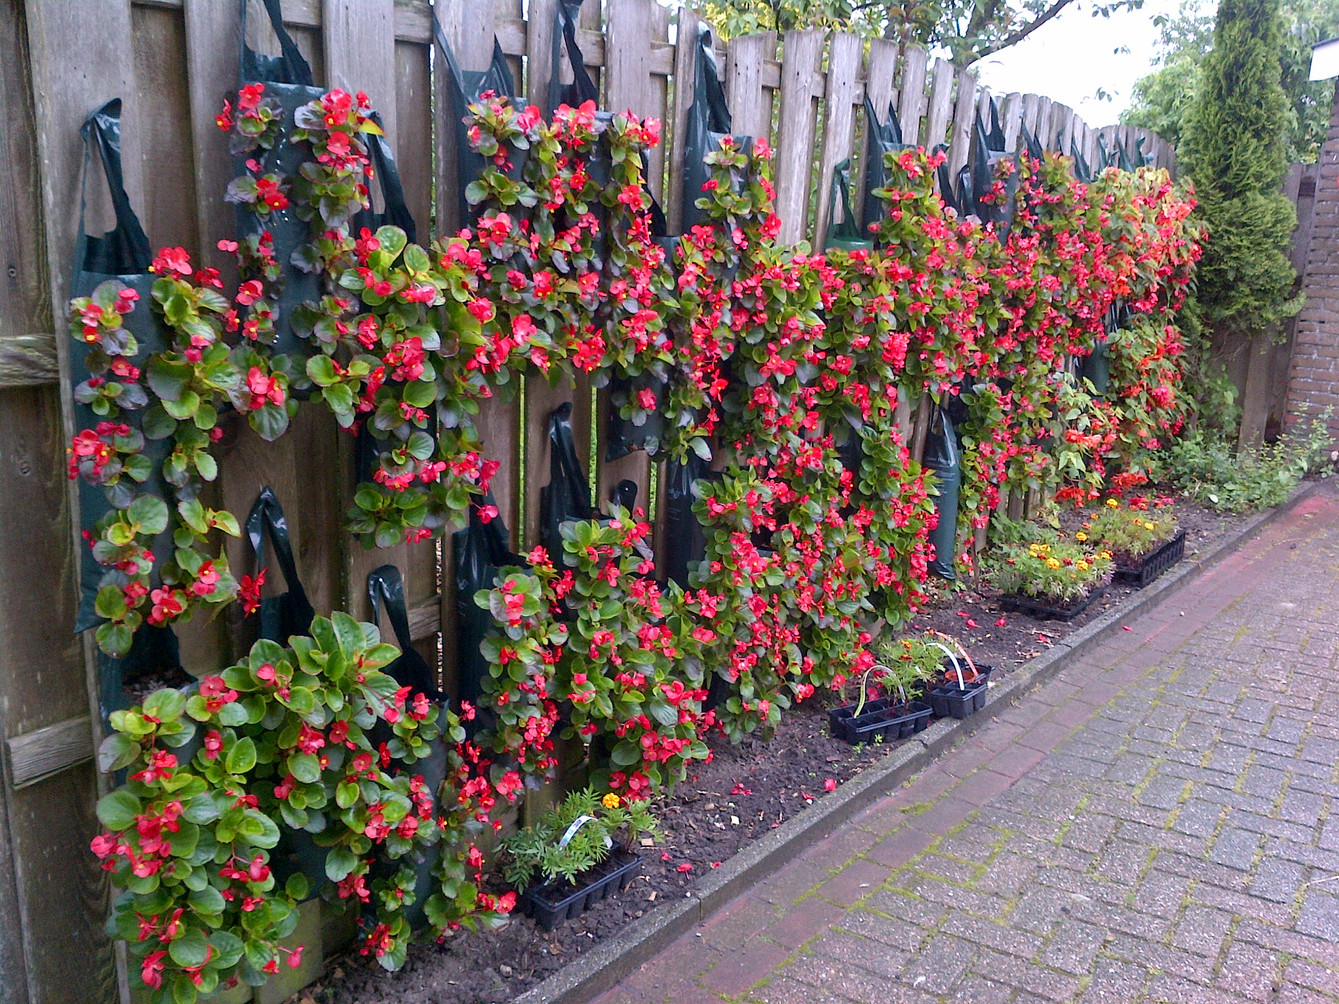 Building a living wall in the Netherlands